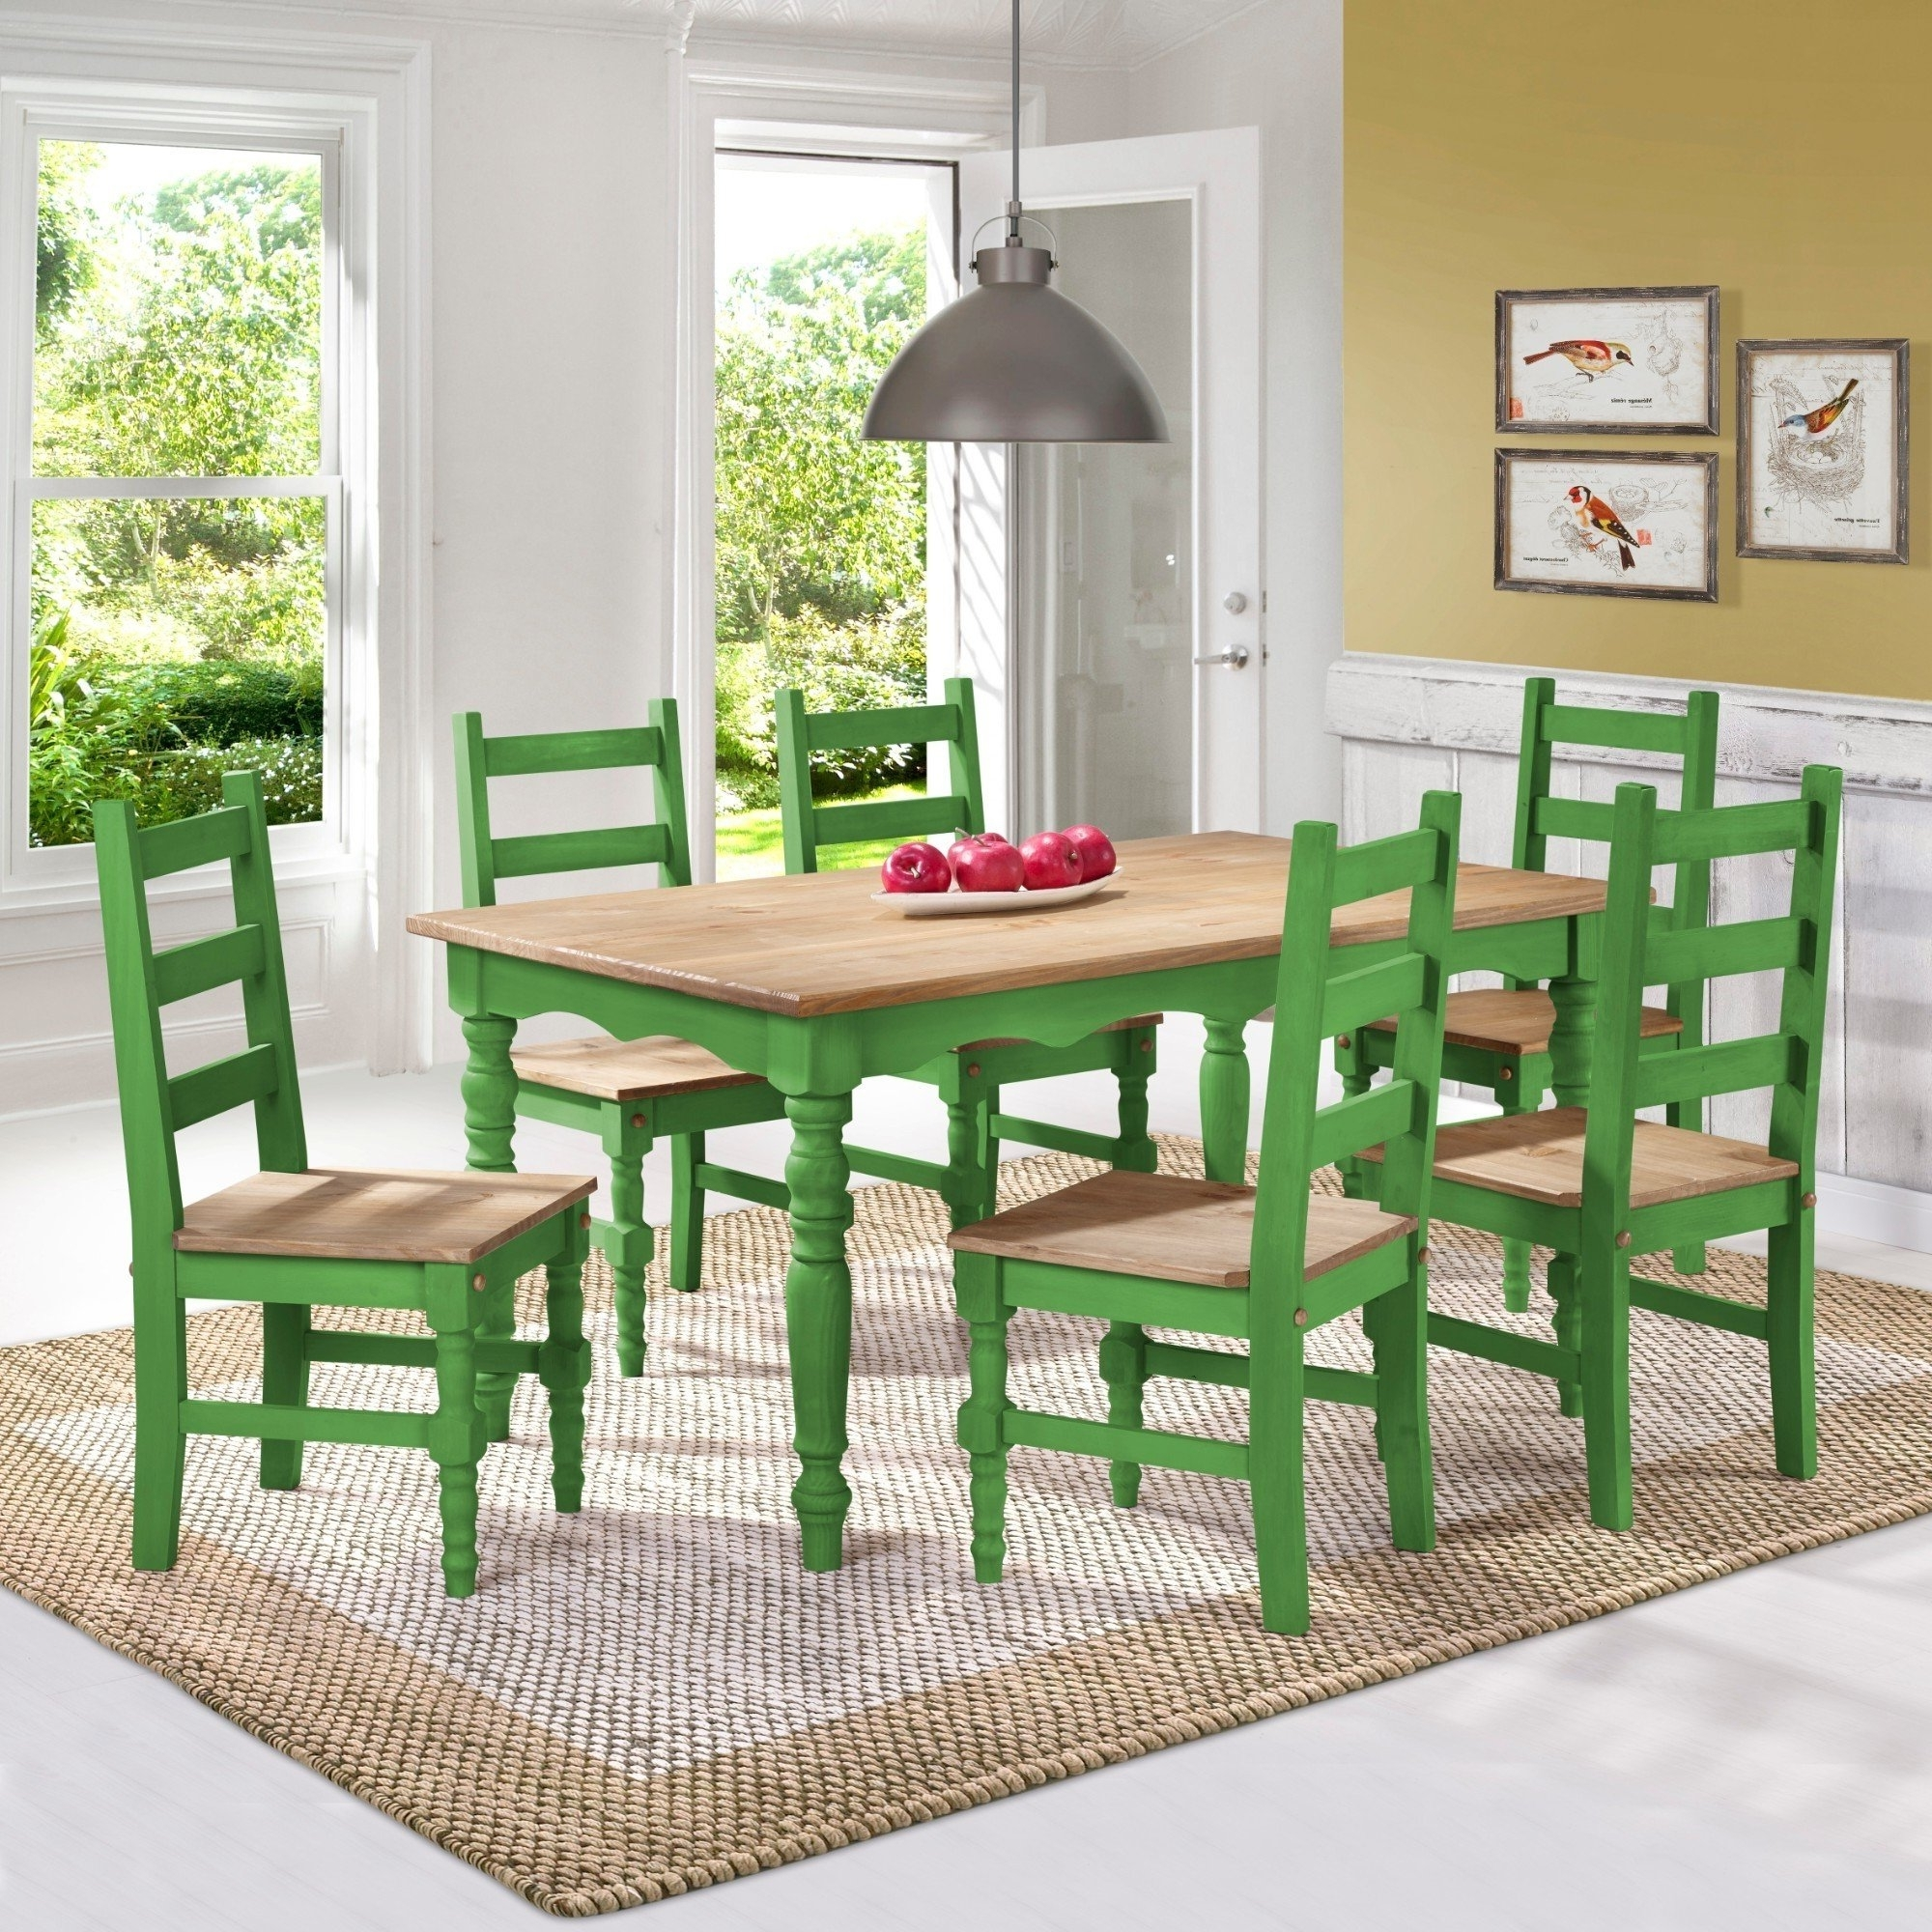 Shop Manhattan Comfort Jay 7 Piece Solid Wood Dining Set With 6 With Regard To 2018 Helms 7 Piece Rectangle Dining Sets With Side Chairs (View 12 of 25)